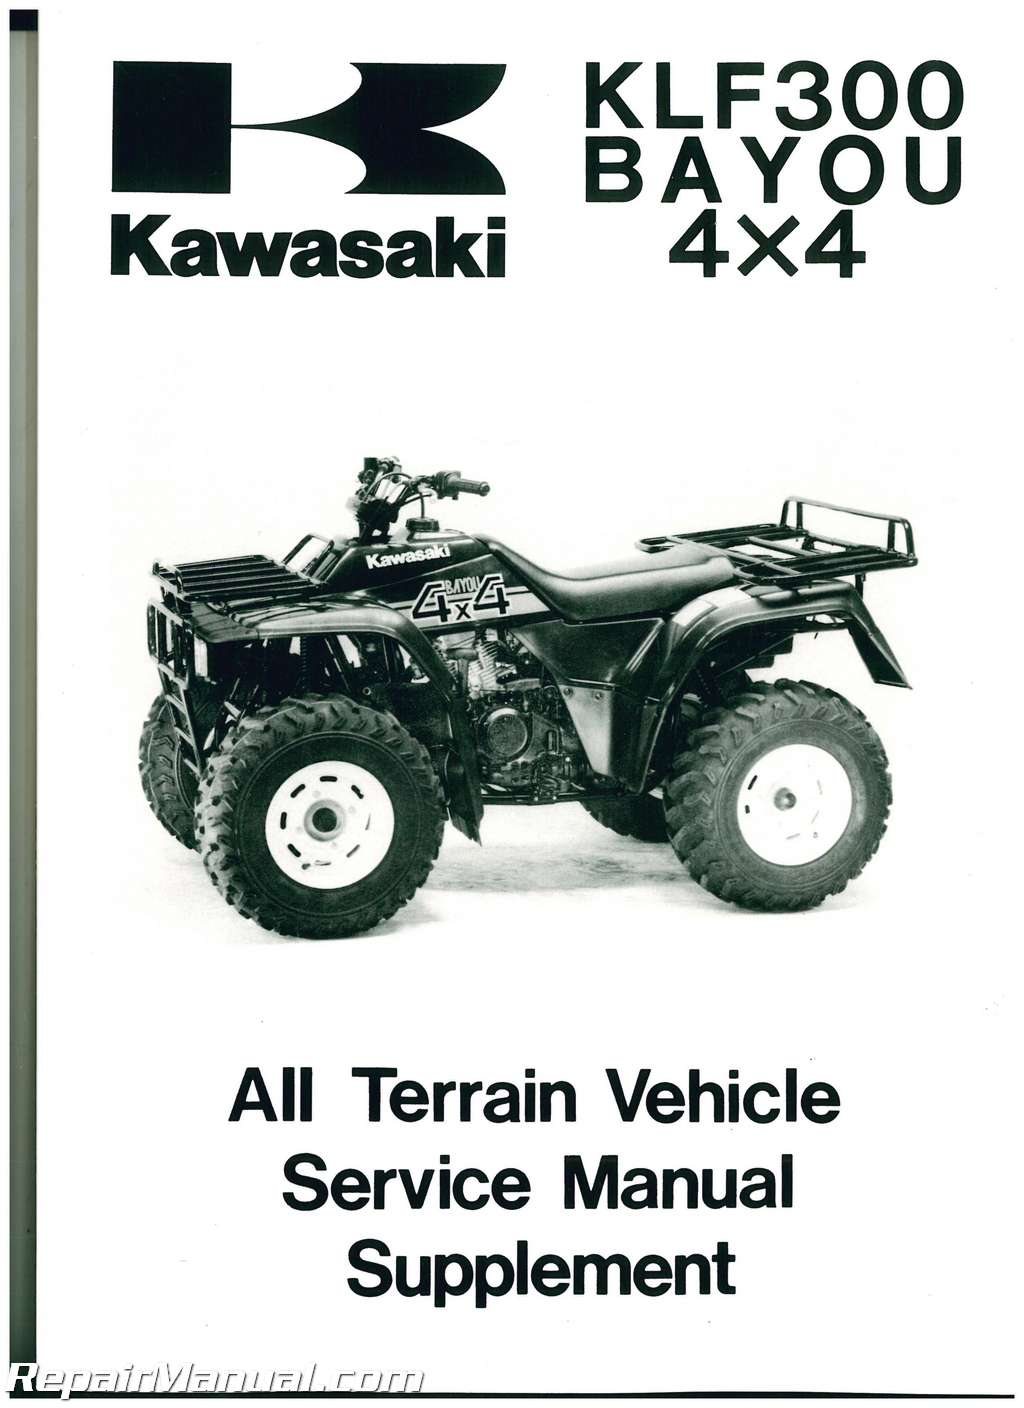 Pdf 6786 Klf 300 Atv Service Manual 2019 Ebook Library Wiring Diagram For Kawasaki Bayou 220 1989 2006 44